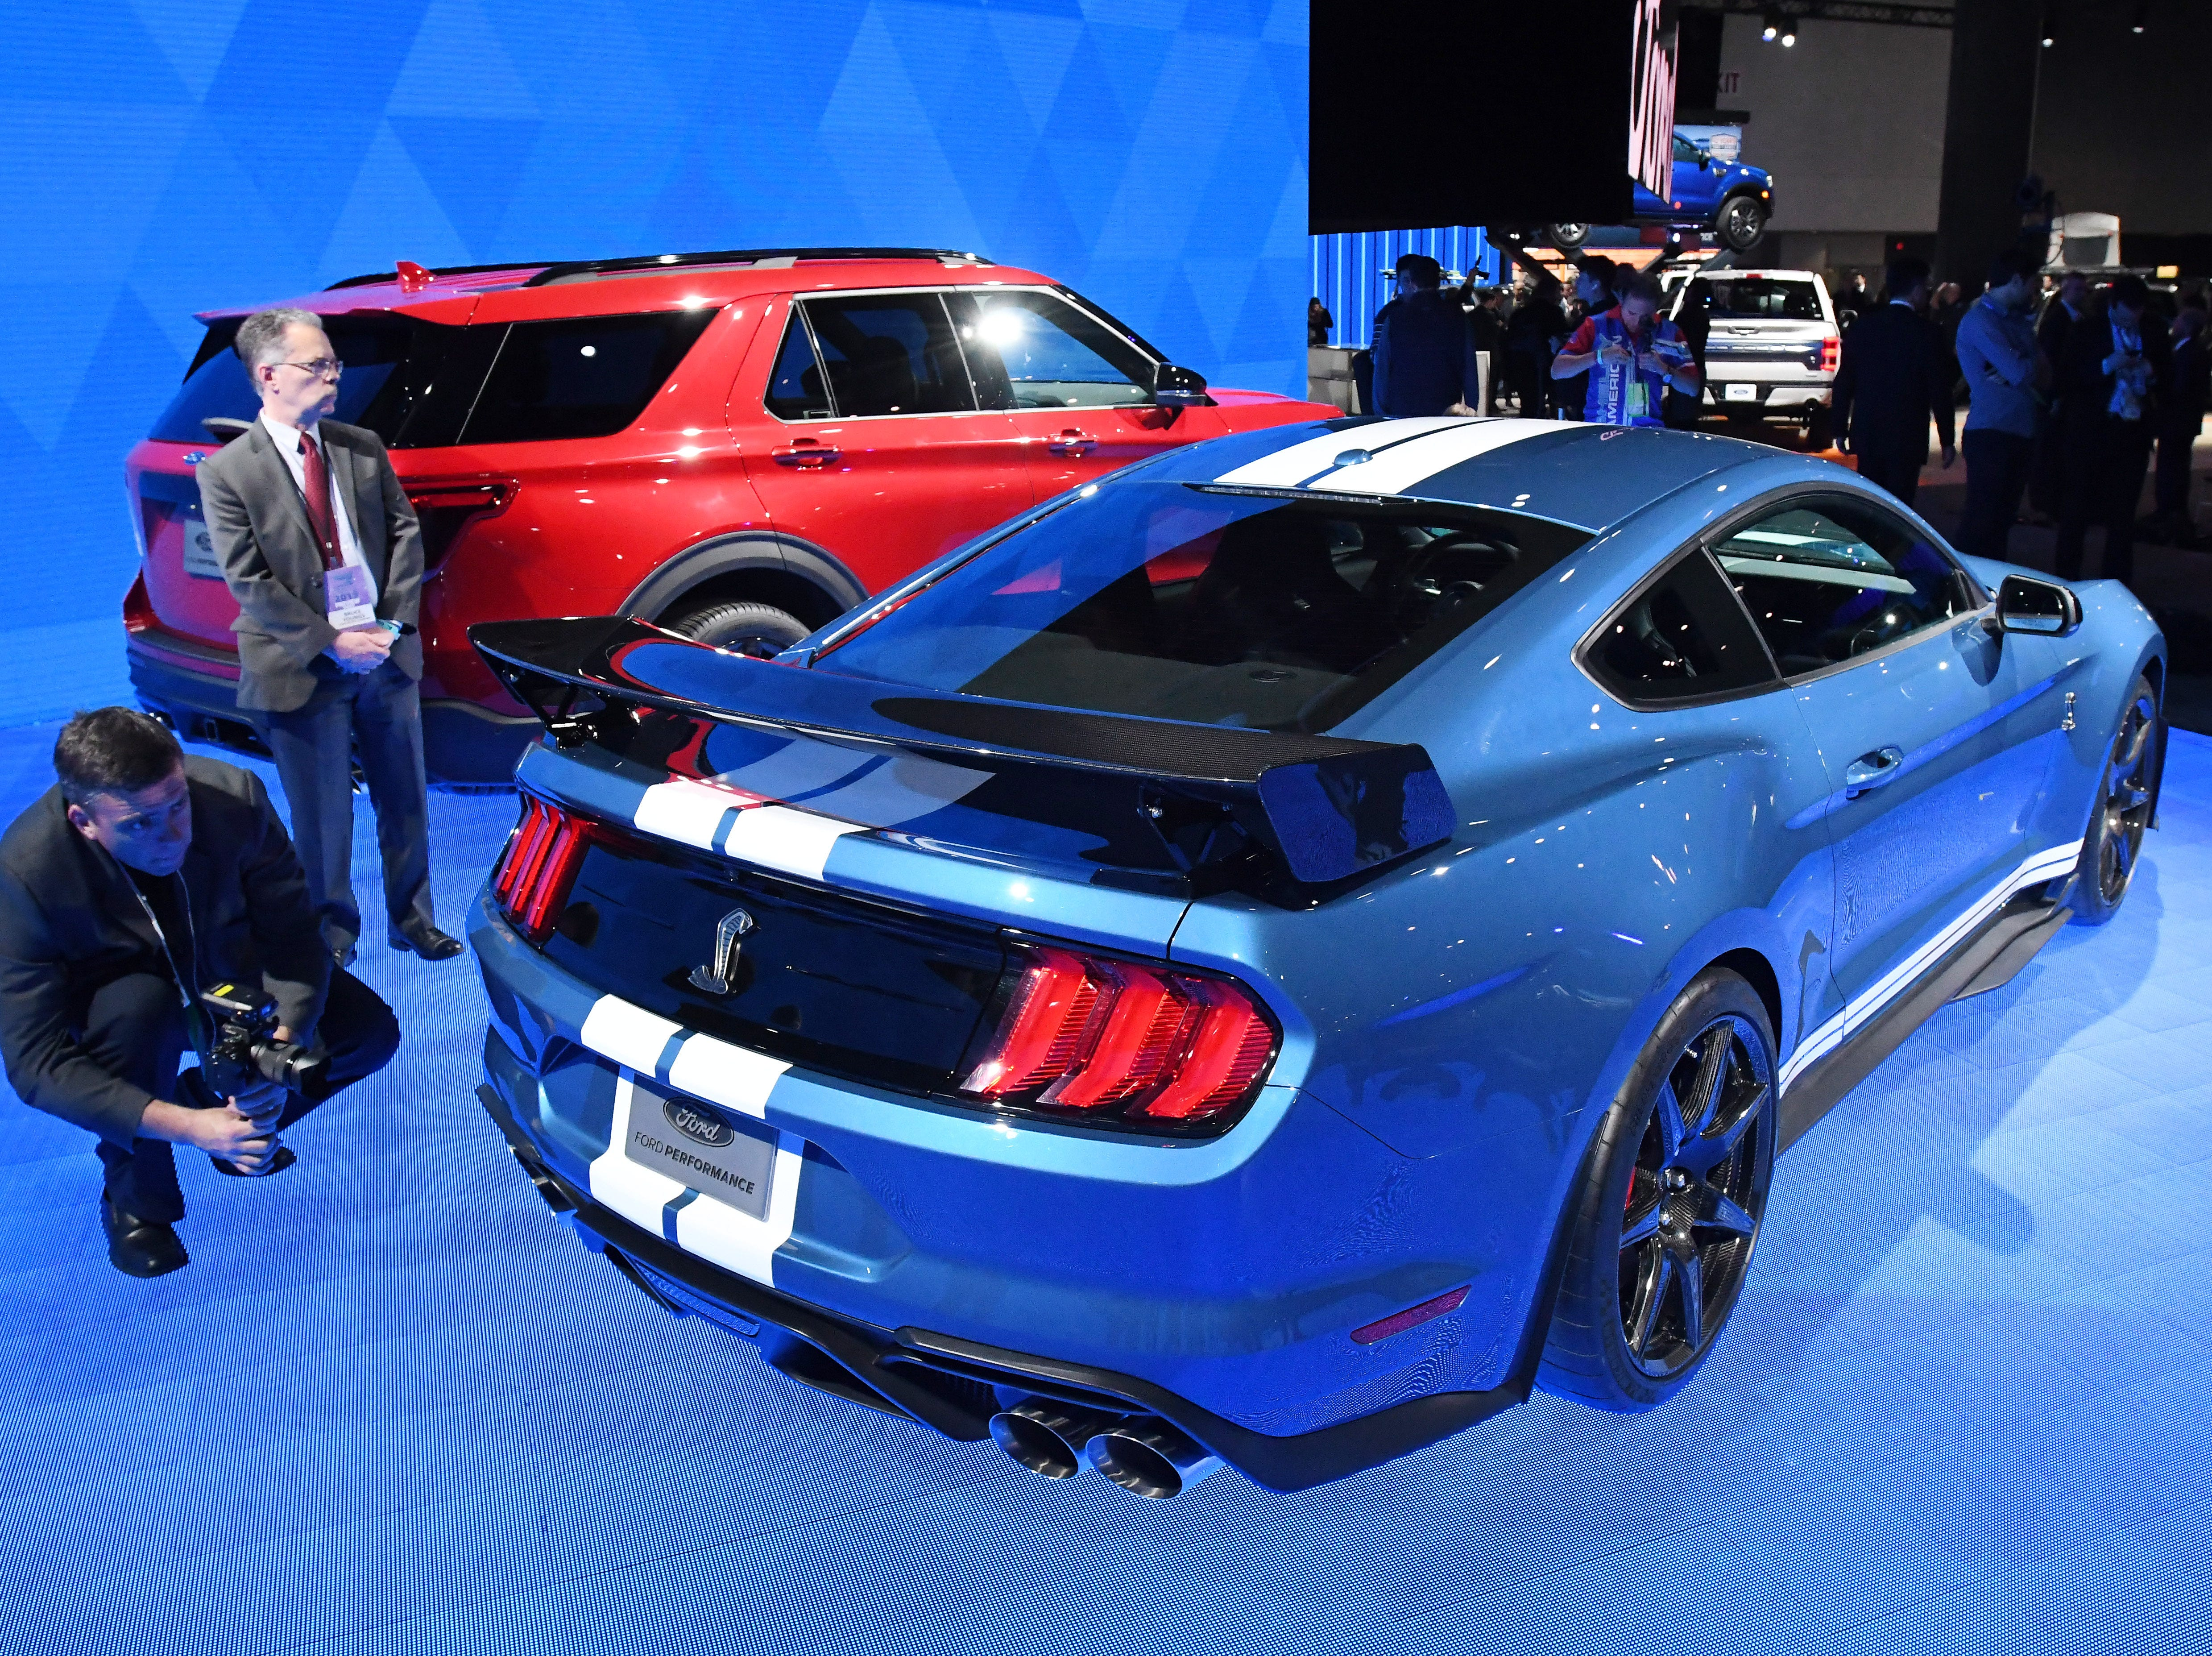 Members of the media look over the Mustang Shelby GT500 and Ford Explorer ST after their unveiling at the Detroit Auto Show.